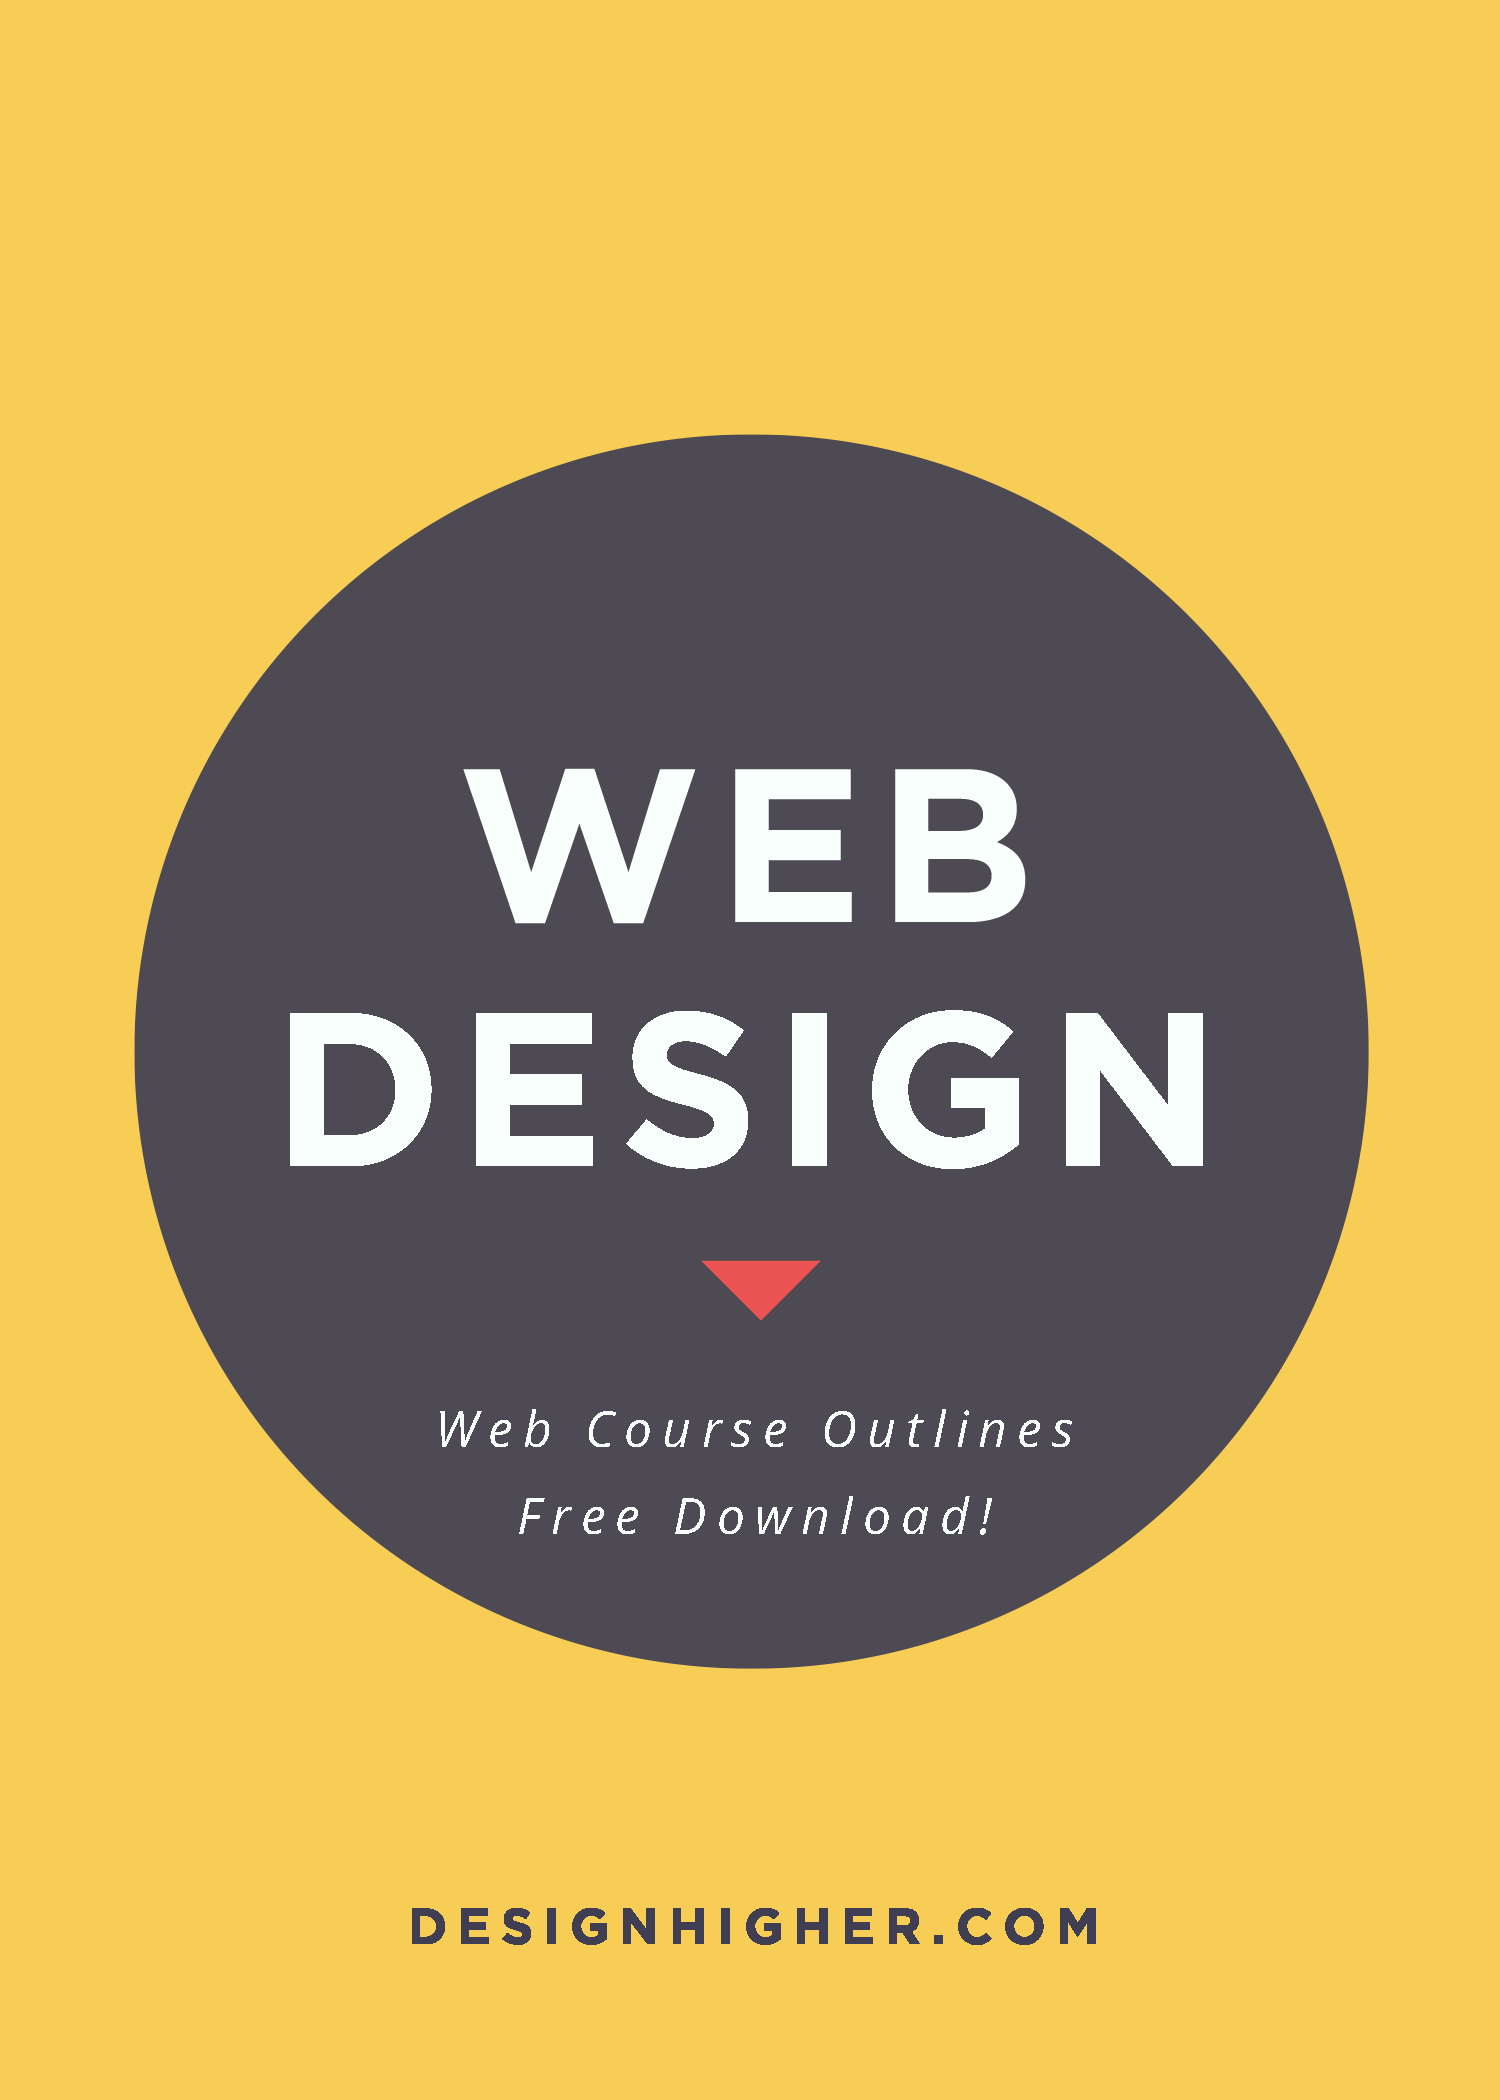 Web Course Outlines Free Download!